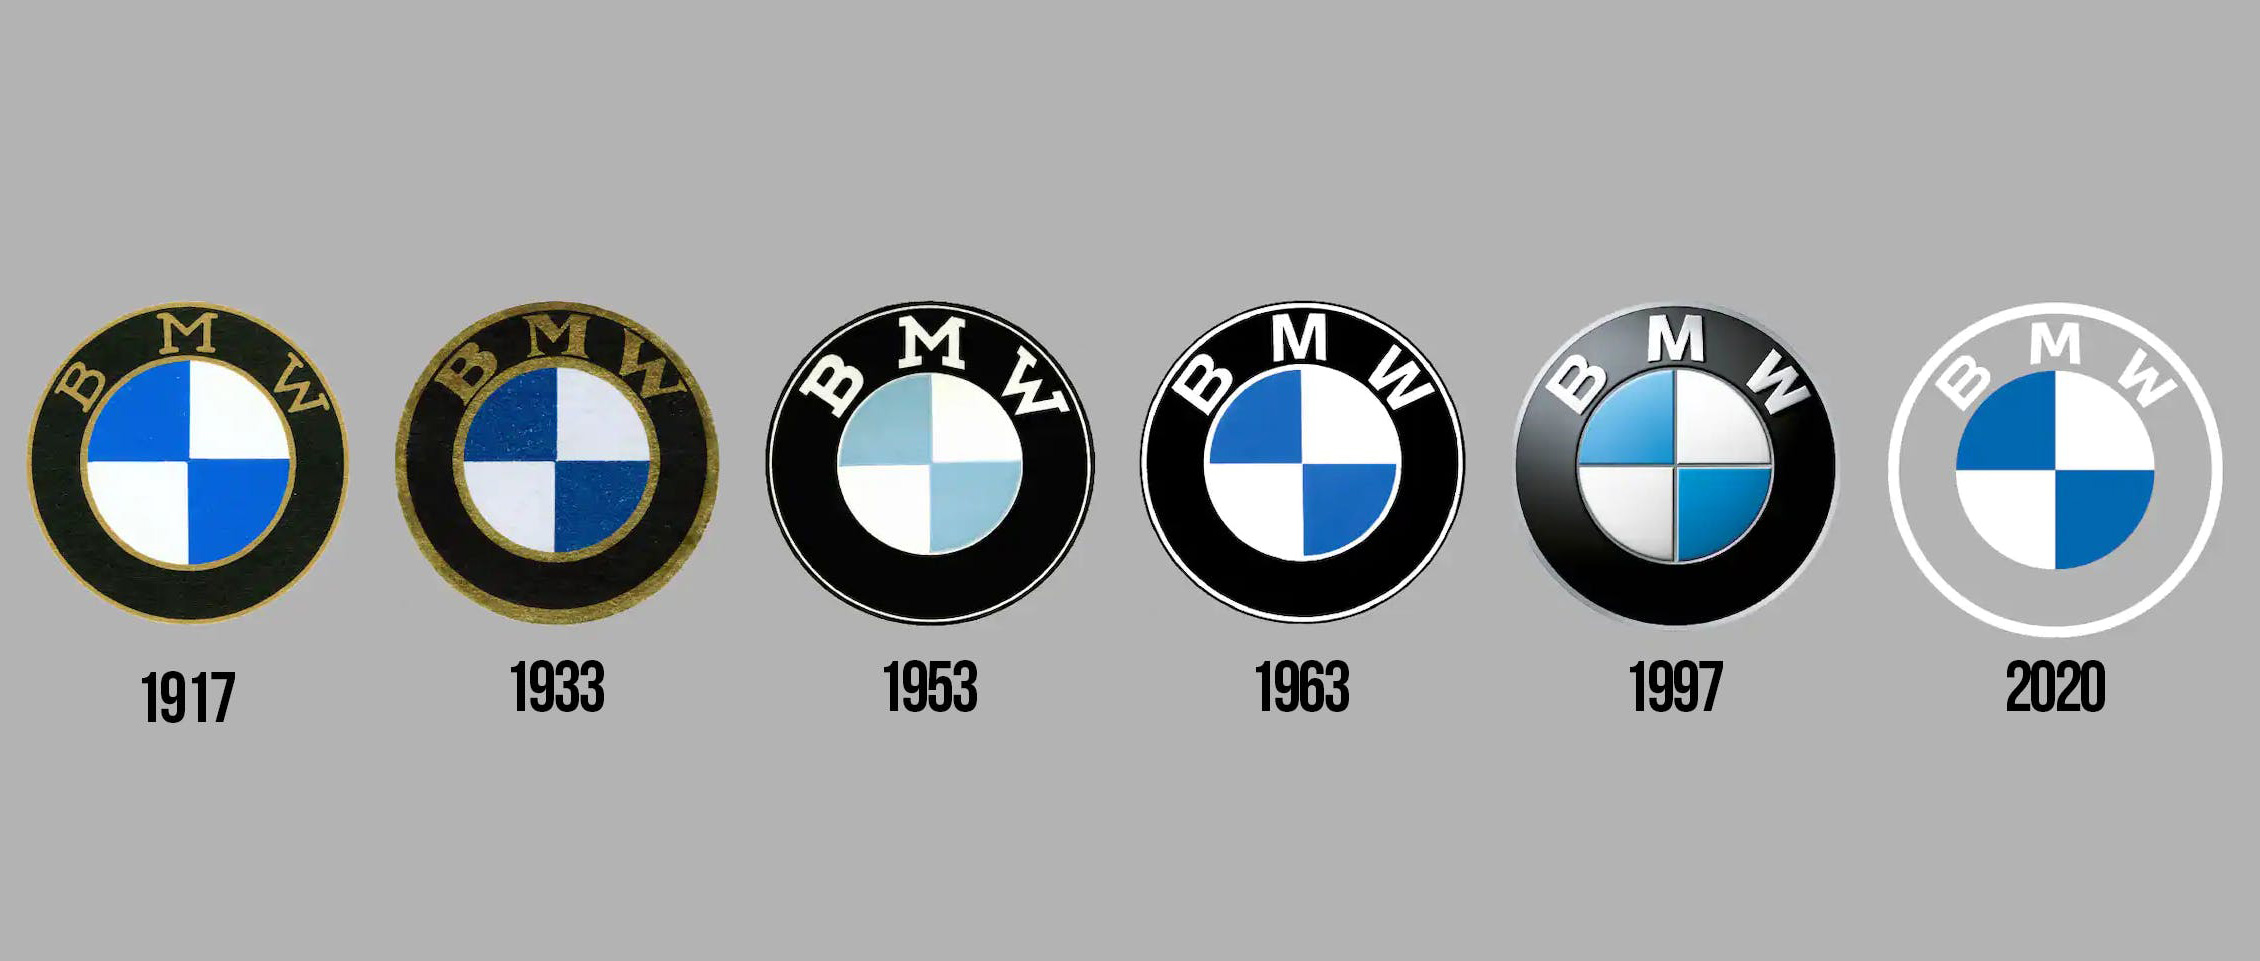 Bmw S First Logo Change In 23 Years Is Polarizing Ad Age